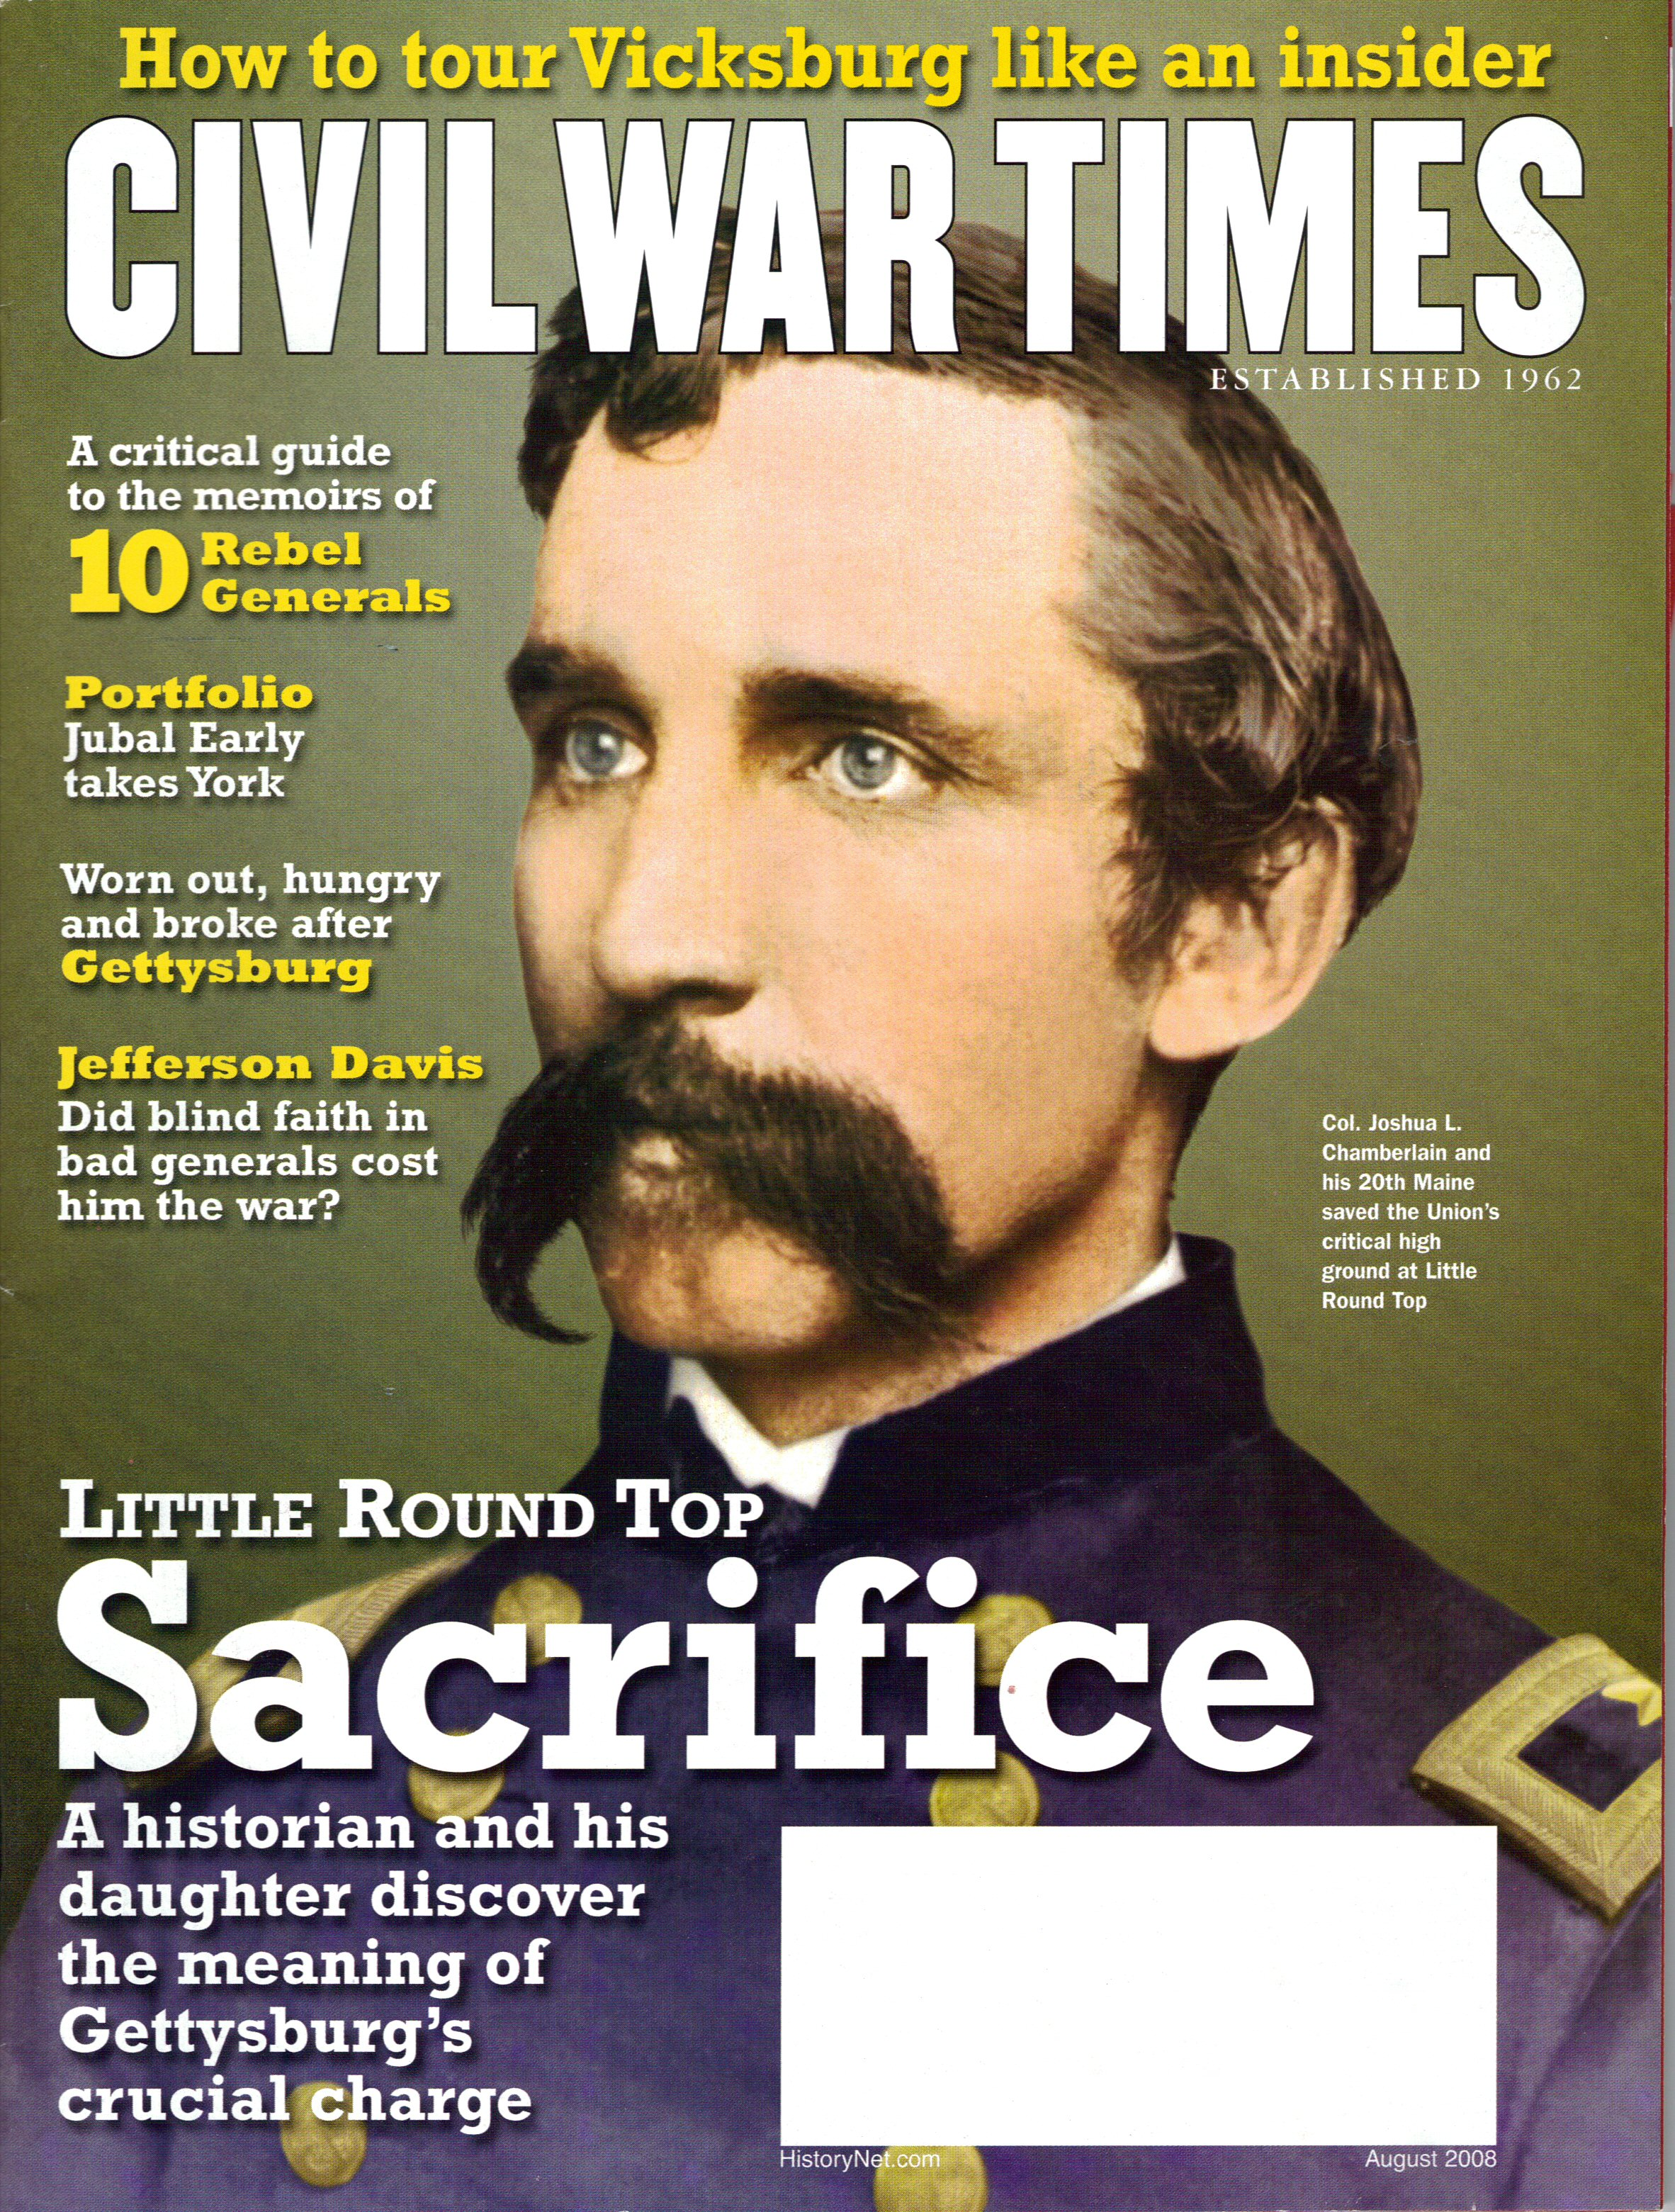 Civil War Times, Volume 47, Number 4 (August 2008)